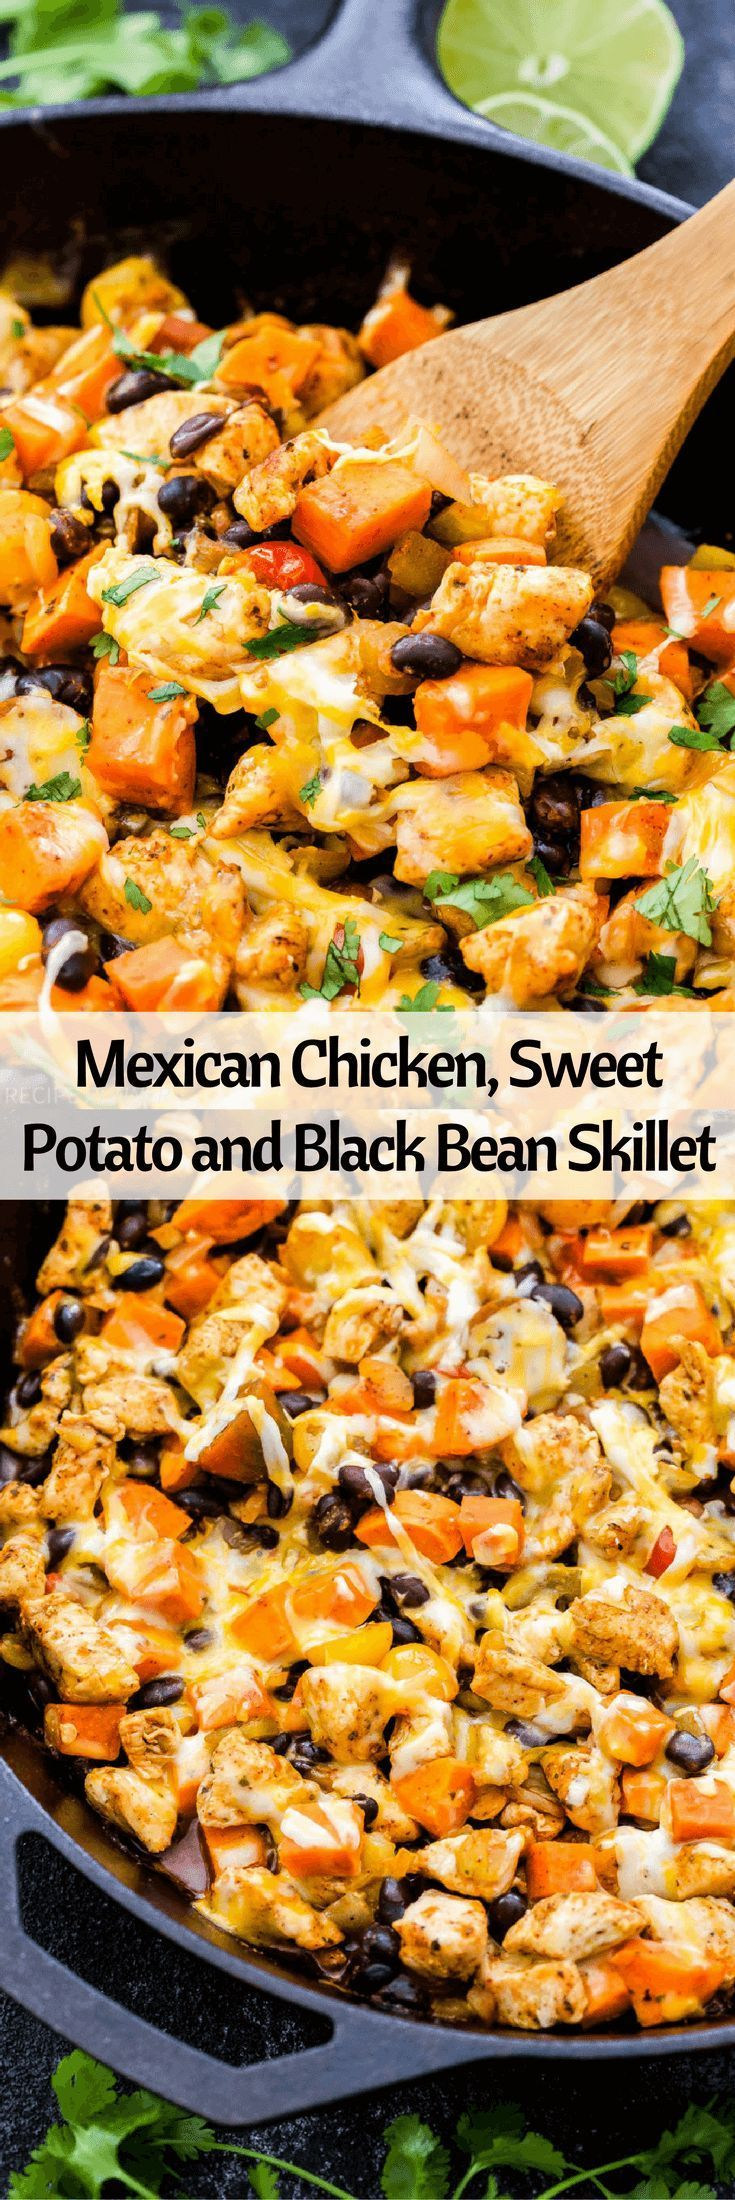 Mexican Chicken, Sweet Potato and Black Bean Skillet Recipe #black #chicken #mexican #potato #recipe...